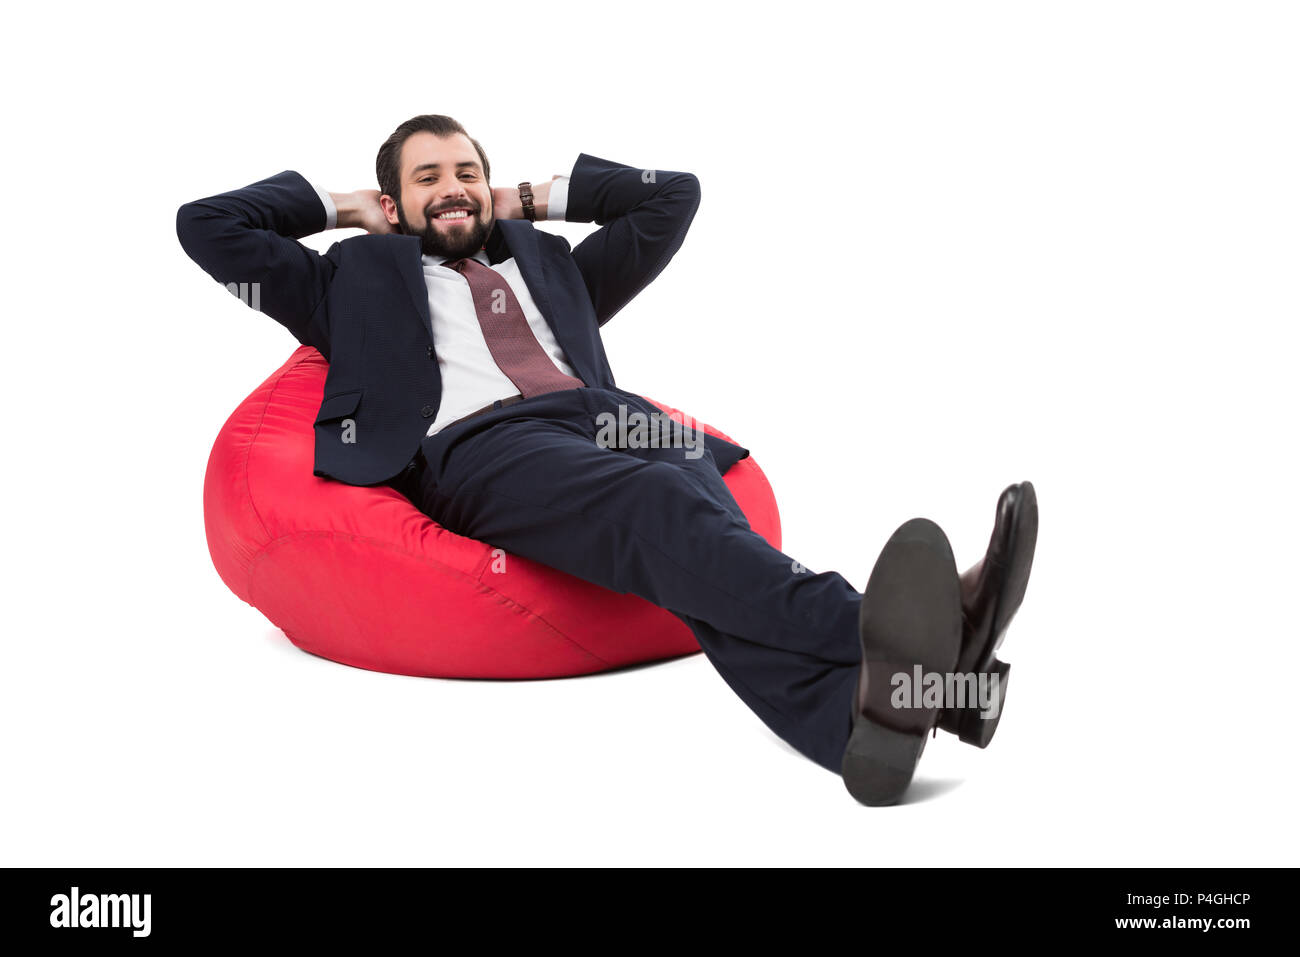 businessman relaxing on bean bag chair, isolated on white - Stock Image